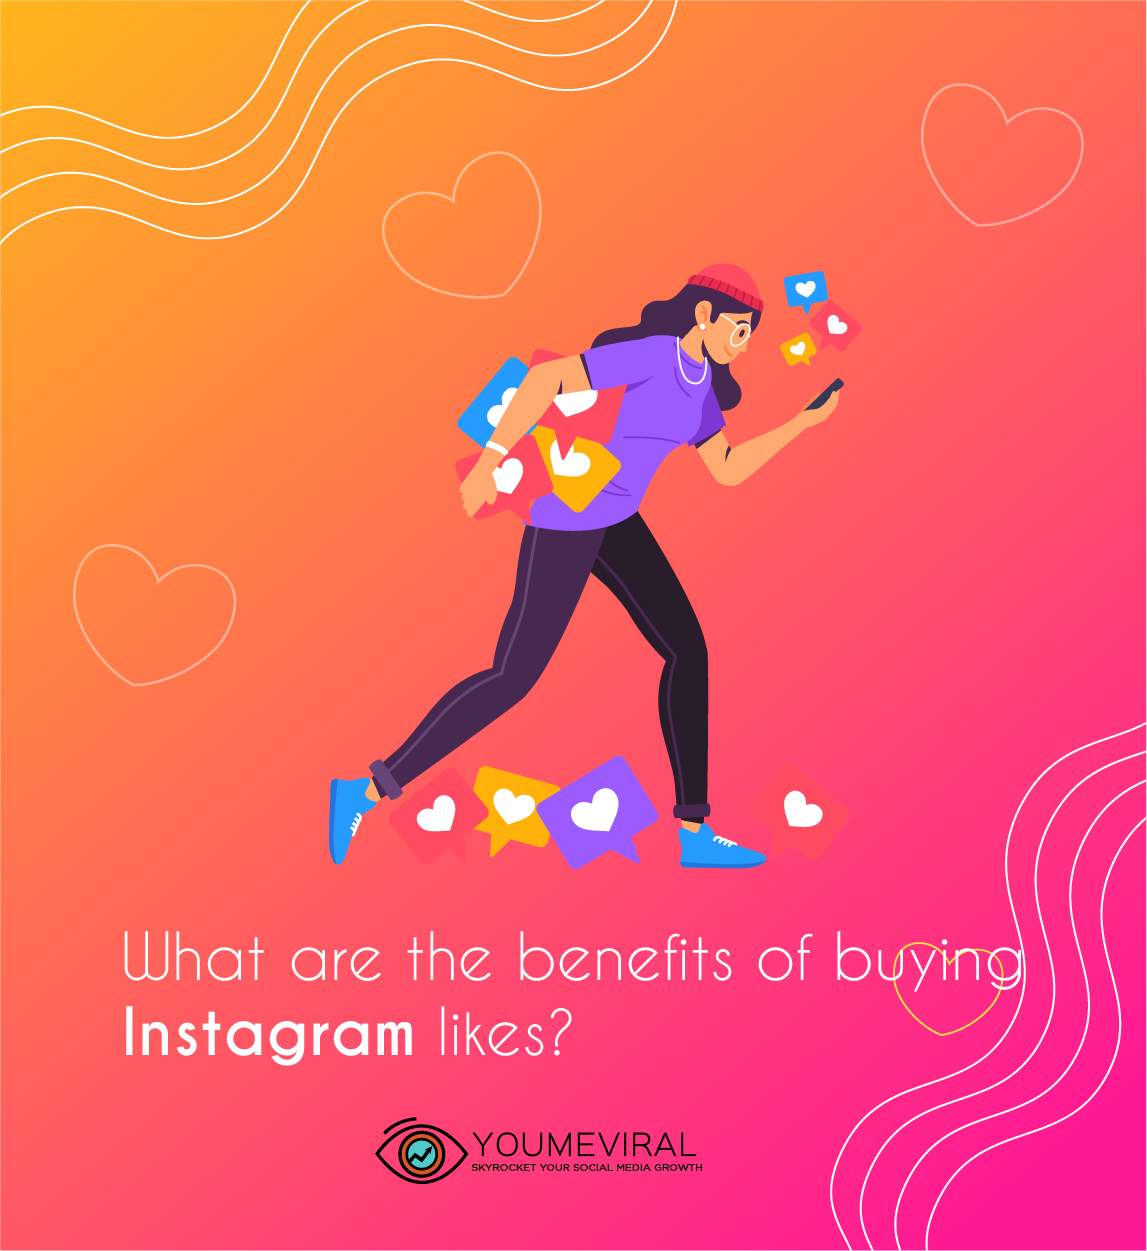 What are the benefits of buying Instagram likes?